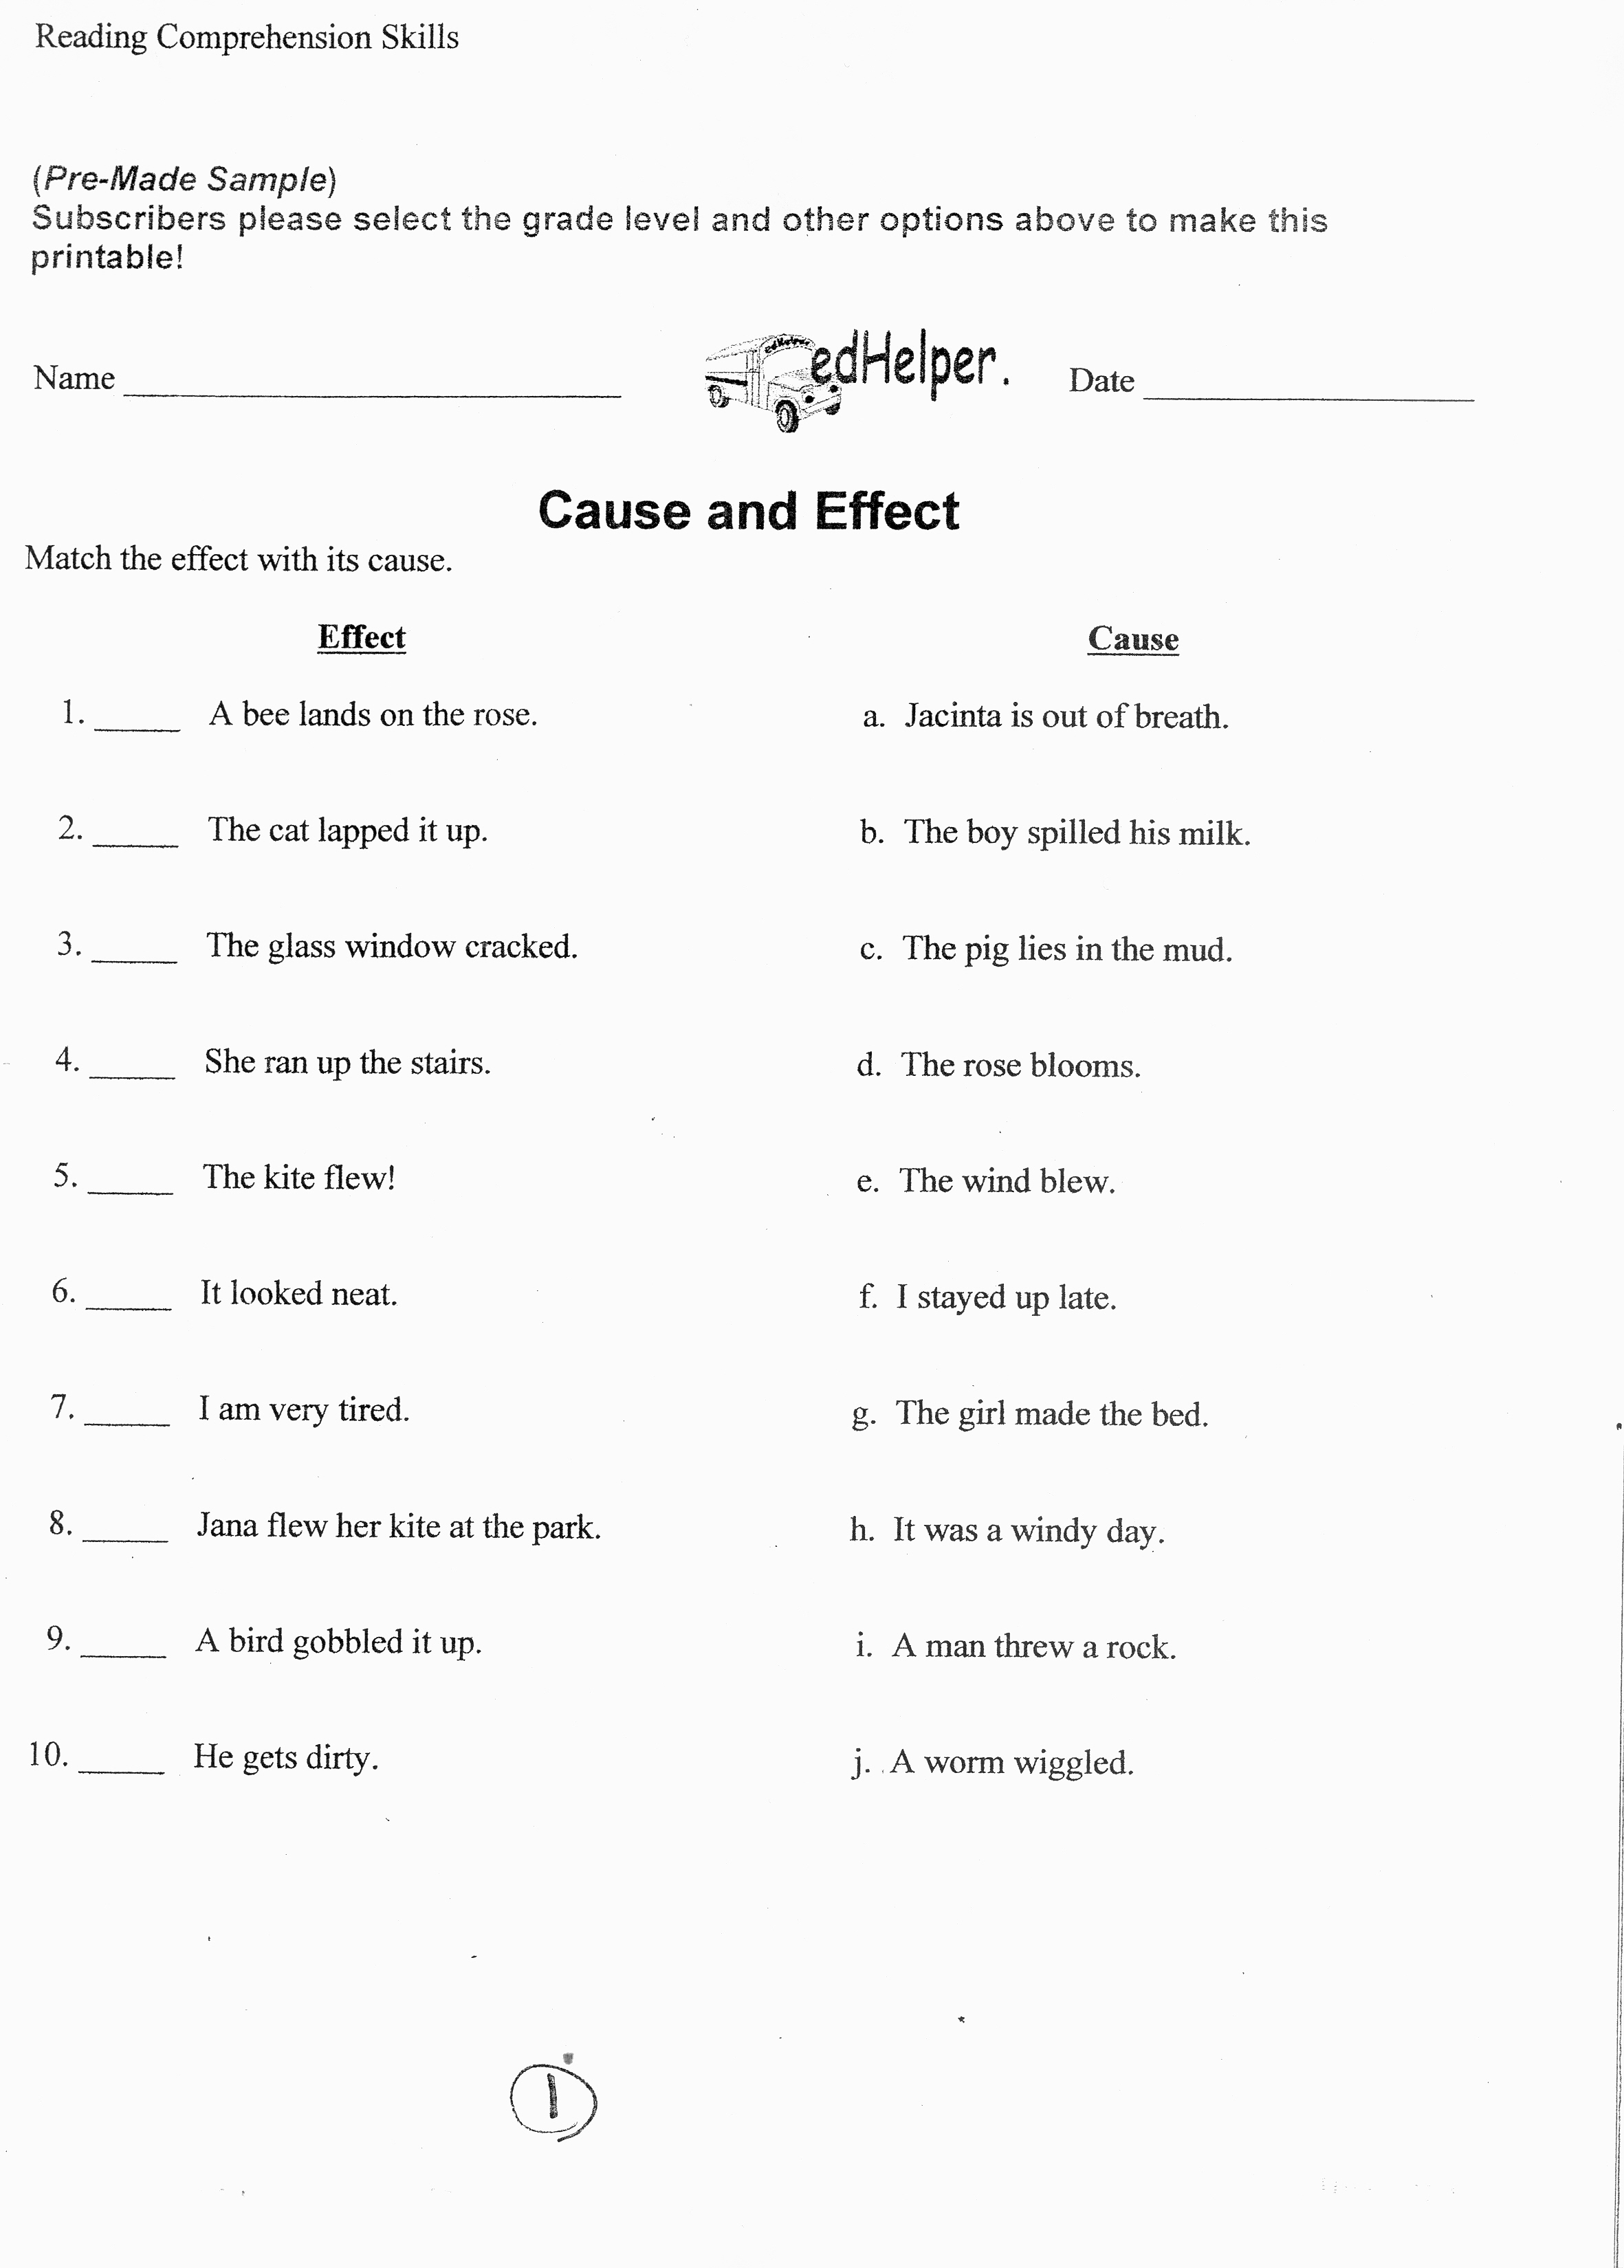 Worksheet Language Arts Worksheets For 6th Grade 6th grade lessons middle school language arts help cause and effect worksheet